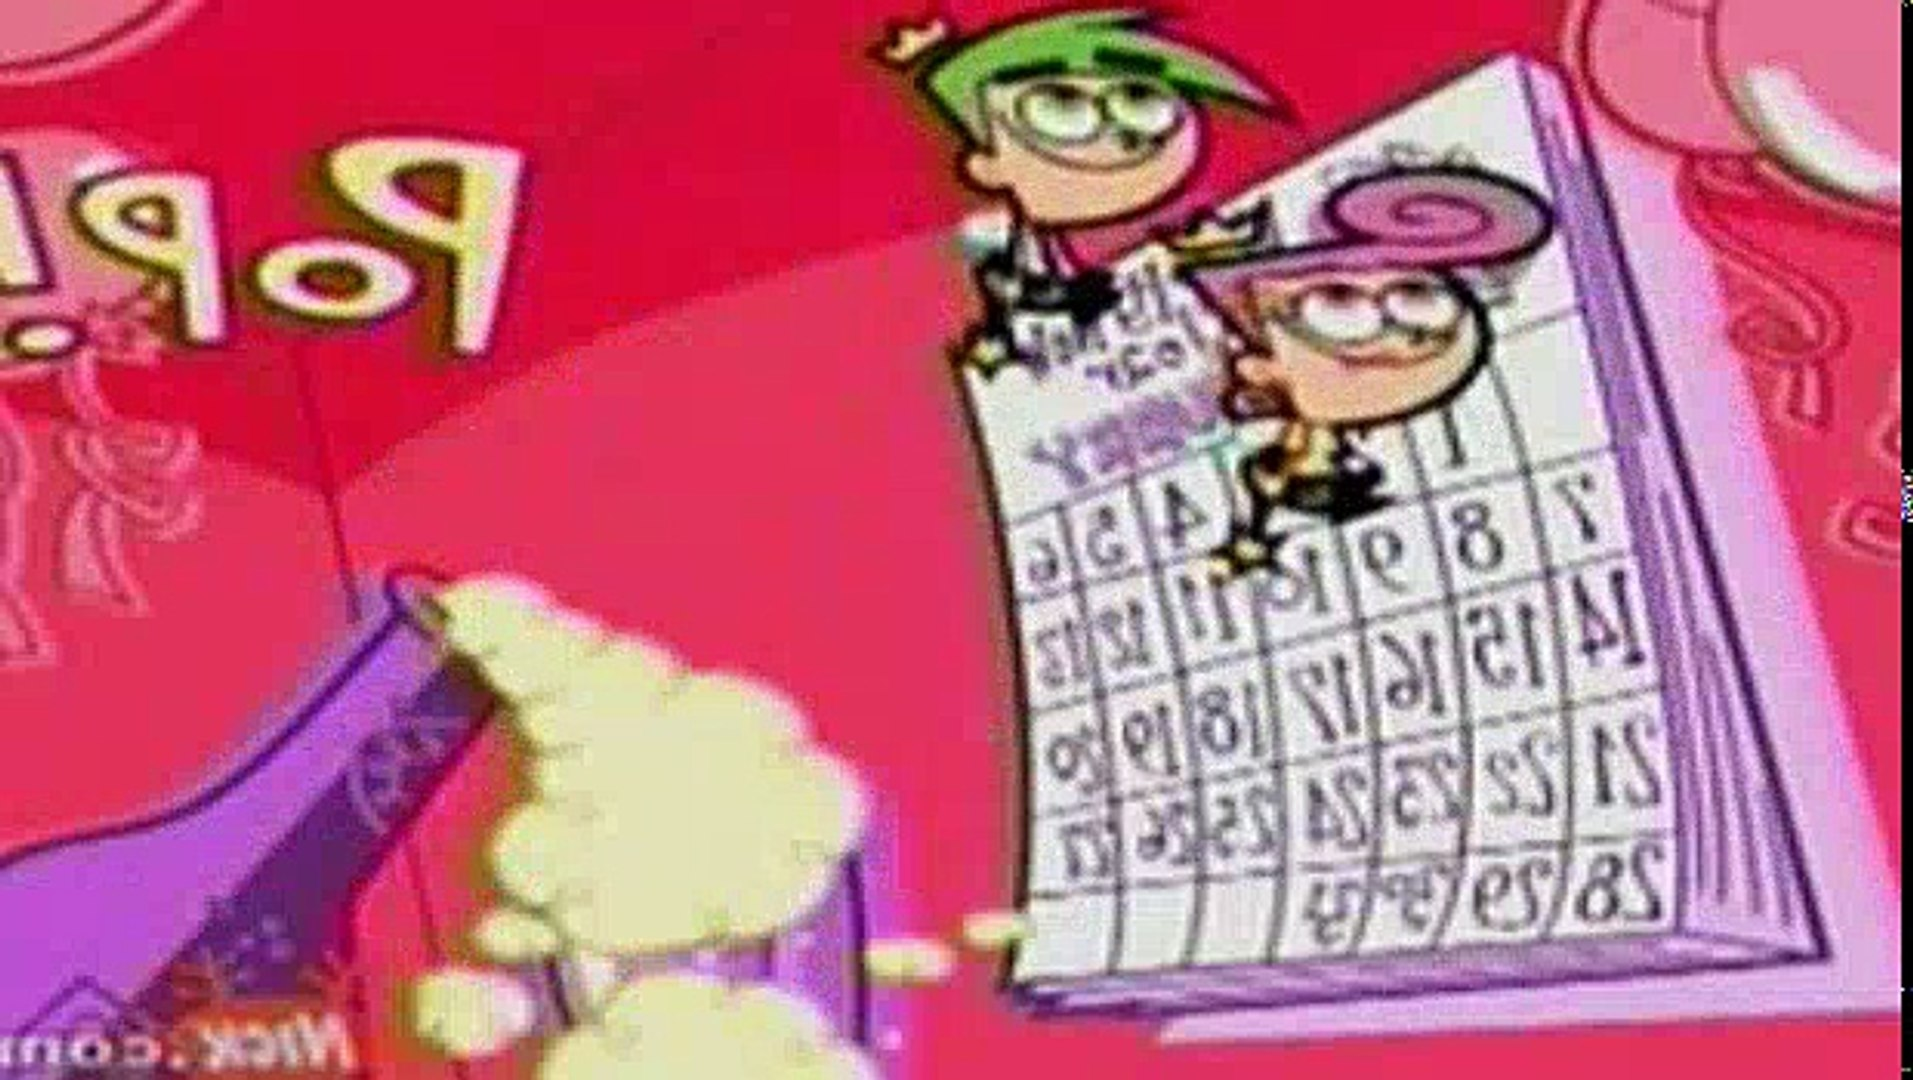 The Fairly OddParents S02E01 - Christmas Every Day